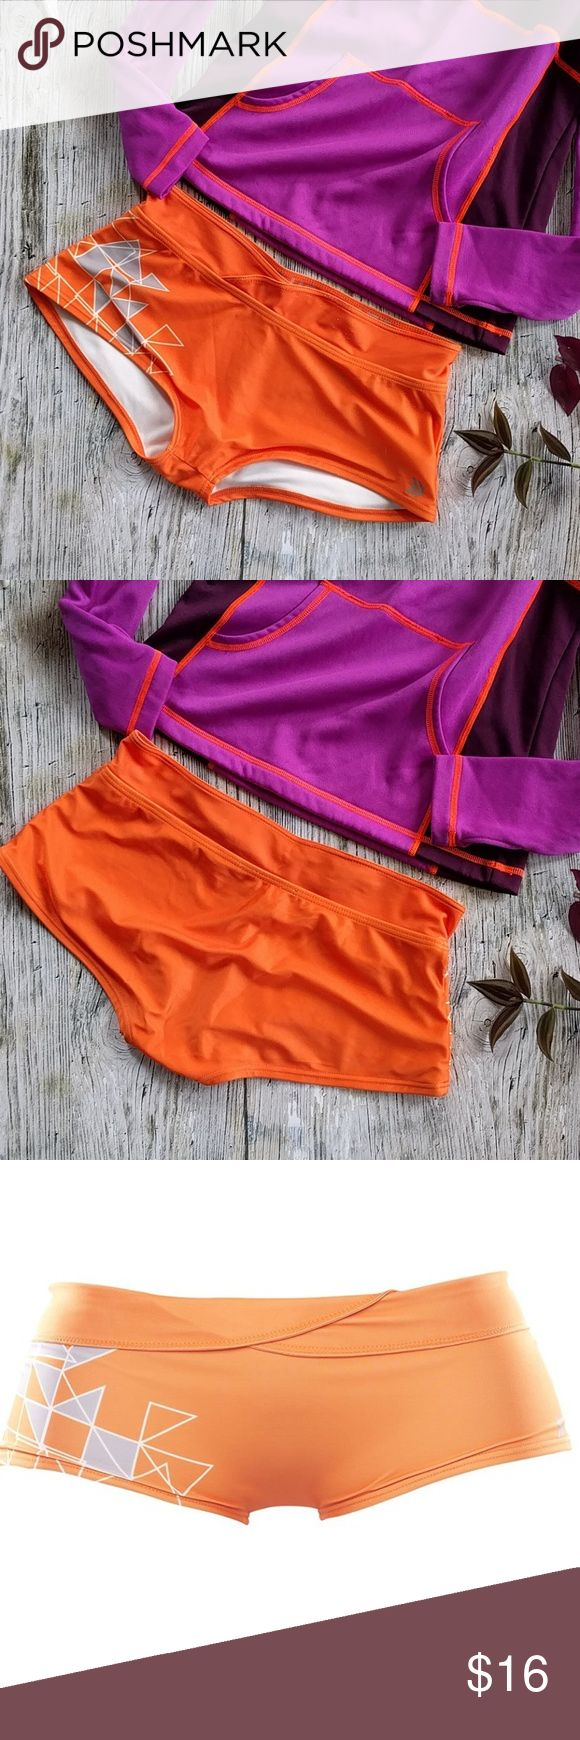 Dry Dudz mid-rise boy cut cheekini Bottom Dry dudz mid-rise boy cut cheekini Bottom  perfect for a sporty and active day on your board or the beach Size M Orange with gray and white geometric hip pattern Bottom ONLY Swim Bikinis